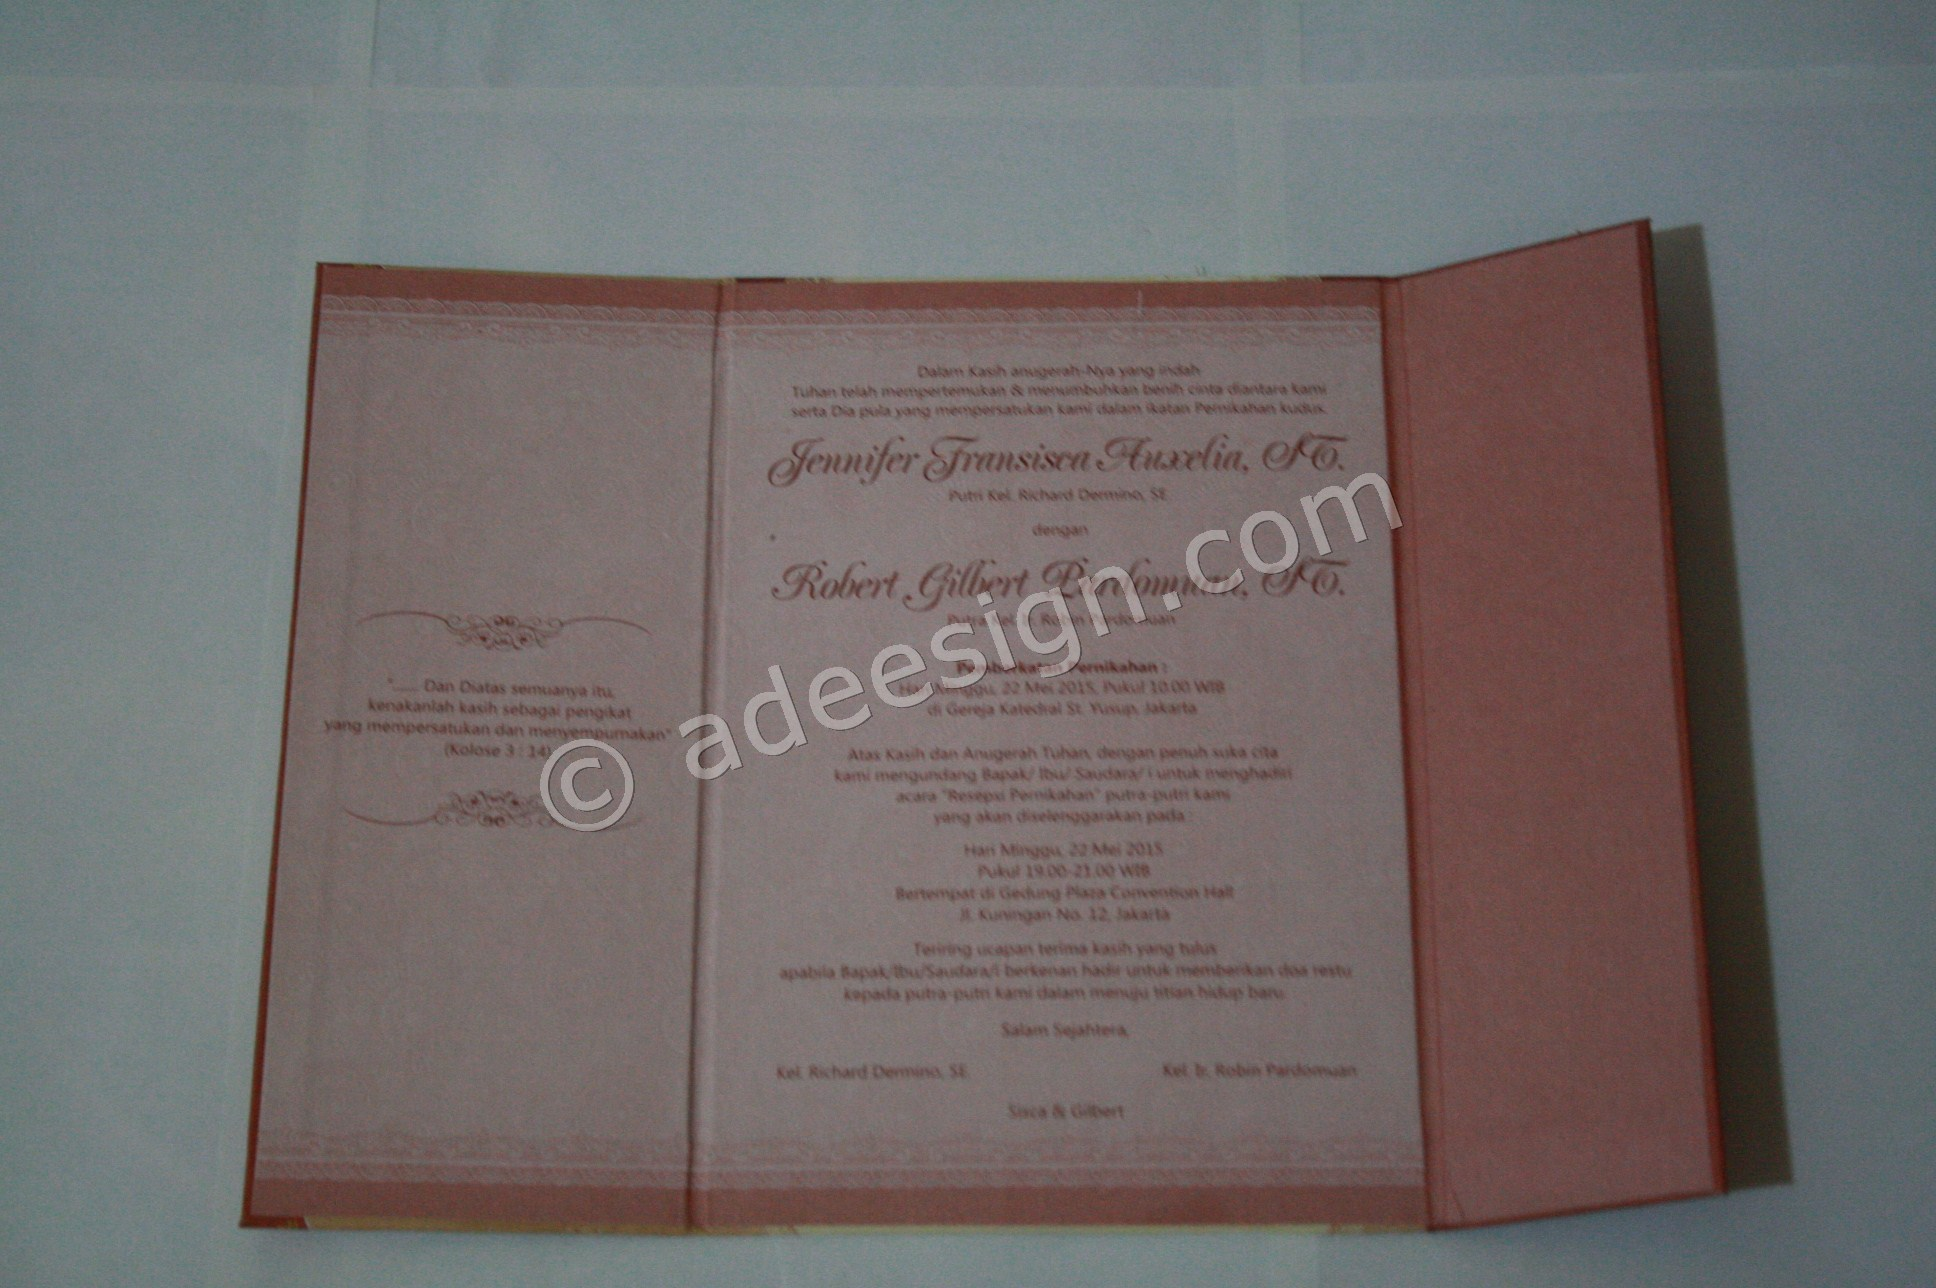 Undangan Pernikahan Hard Cover Sisca dan Gilbert 3 - Percetakan Wedding Invitations Murah di Kapasan